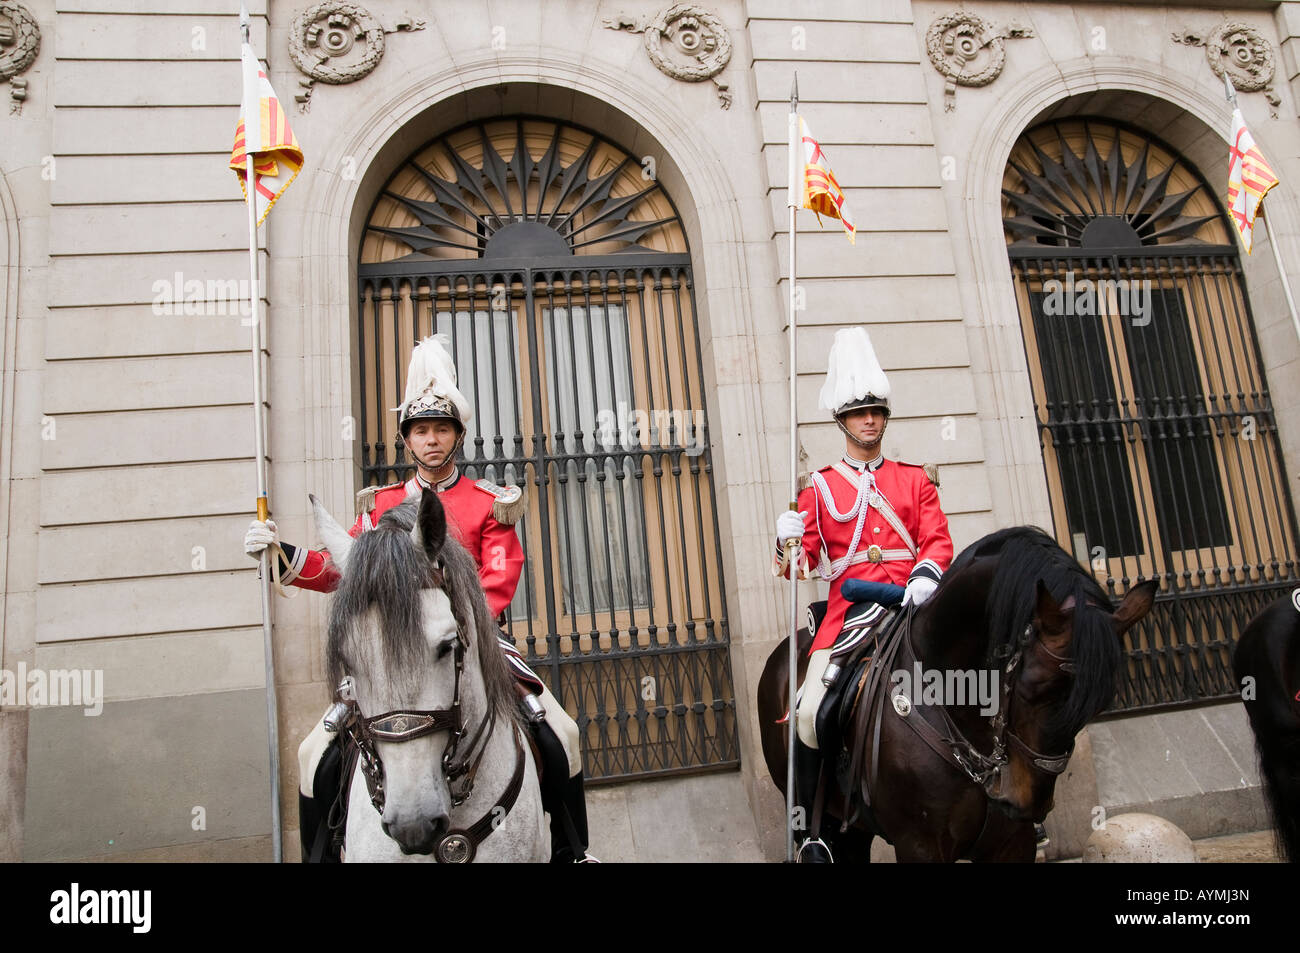 The Police mounted unit lancers of Barcelona - Stock Image